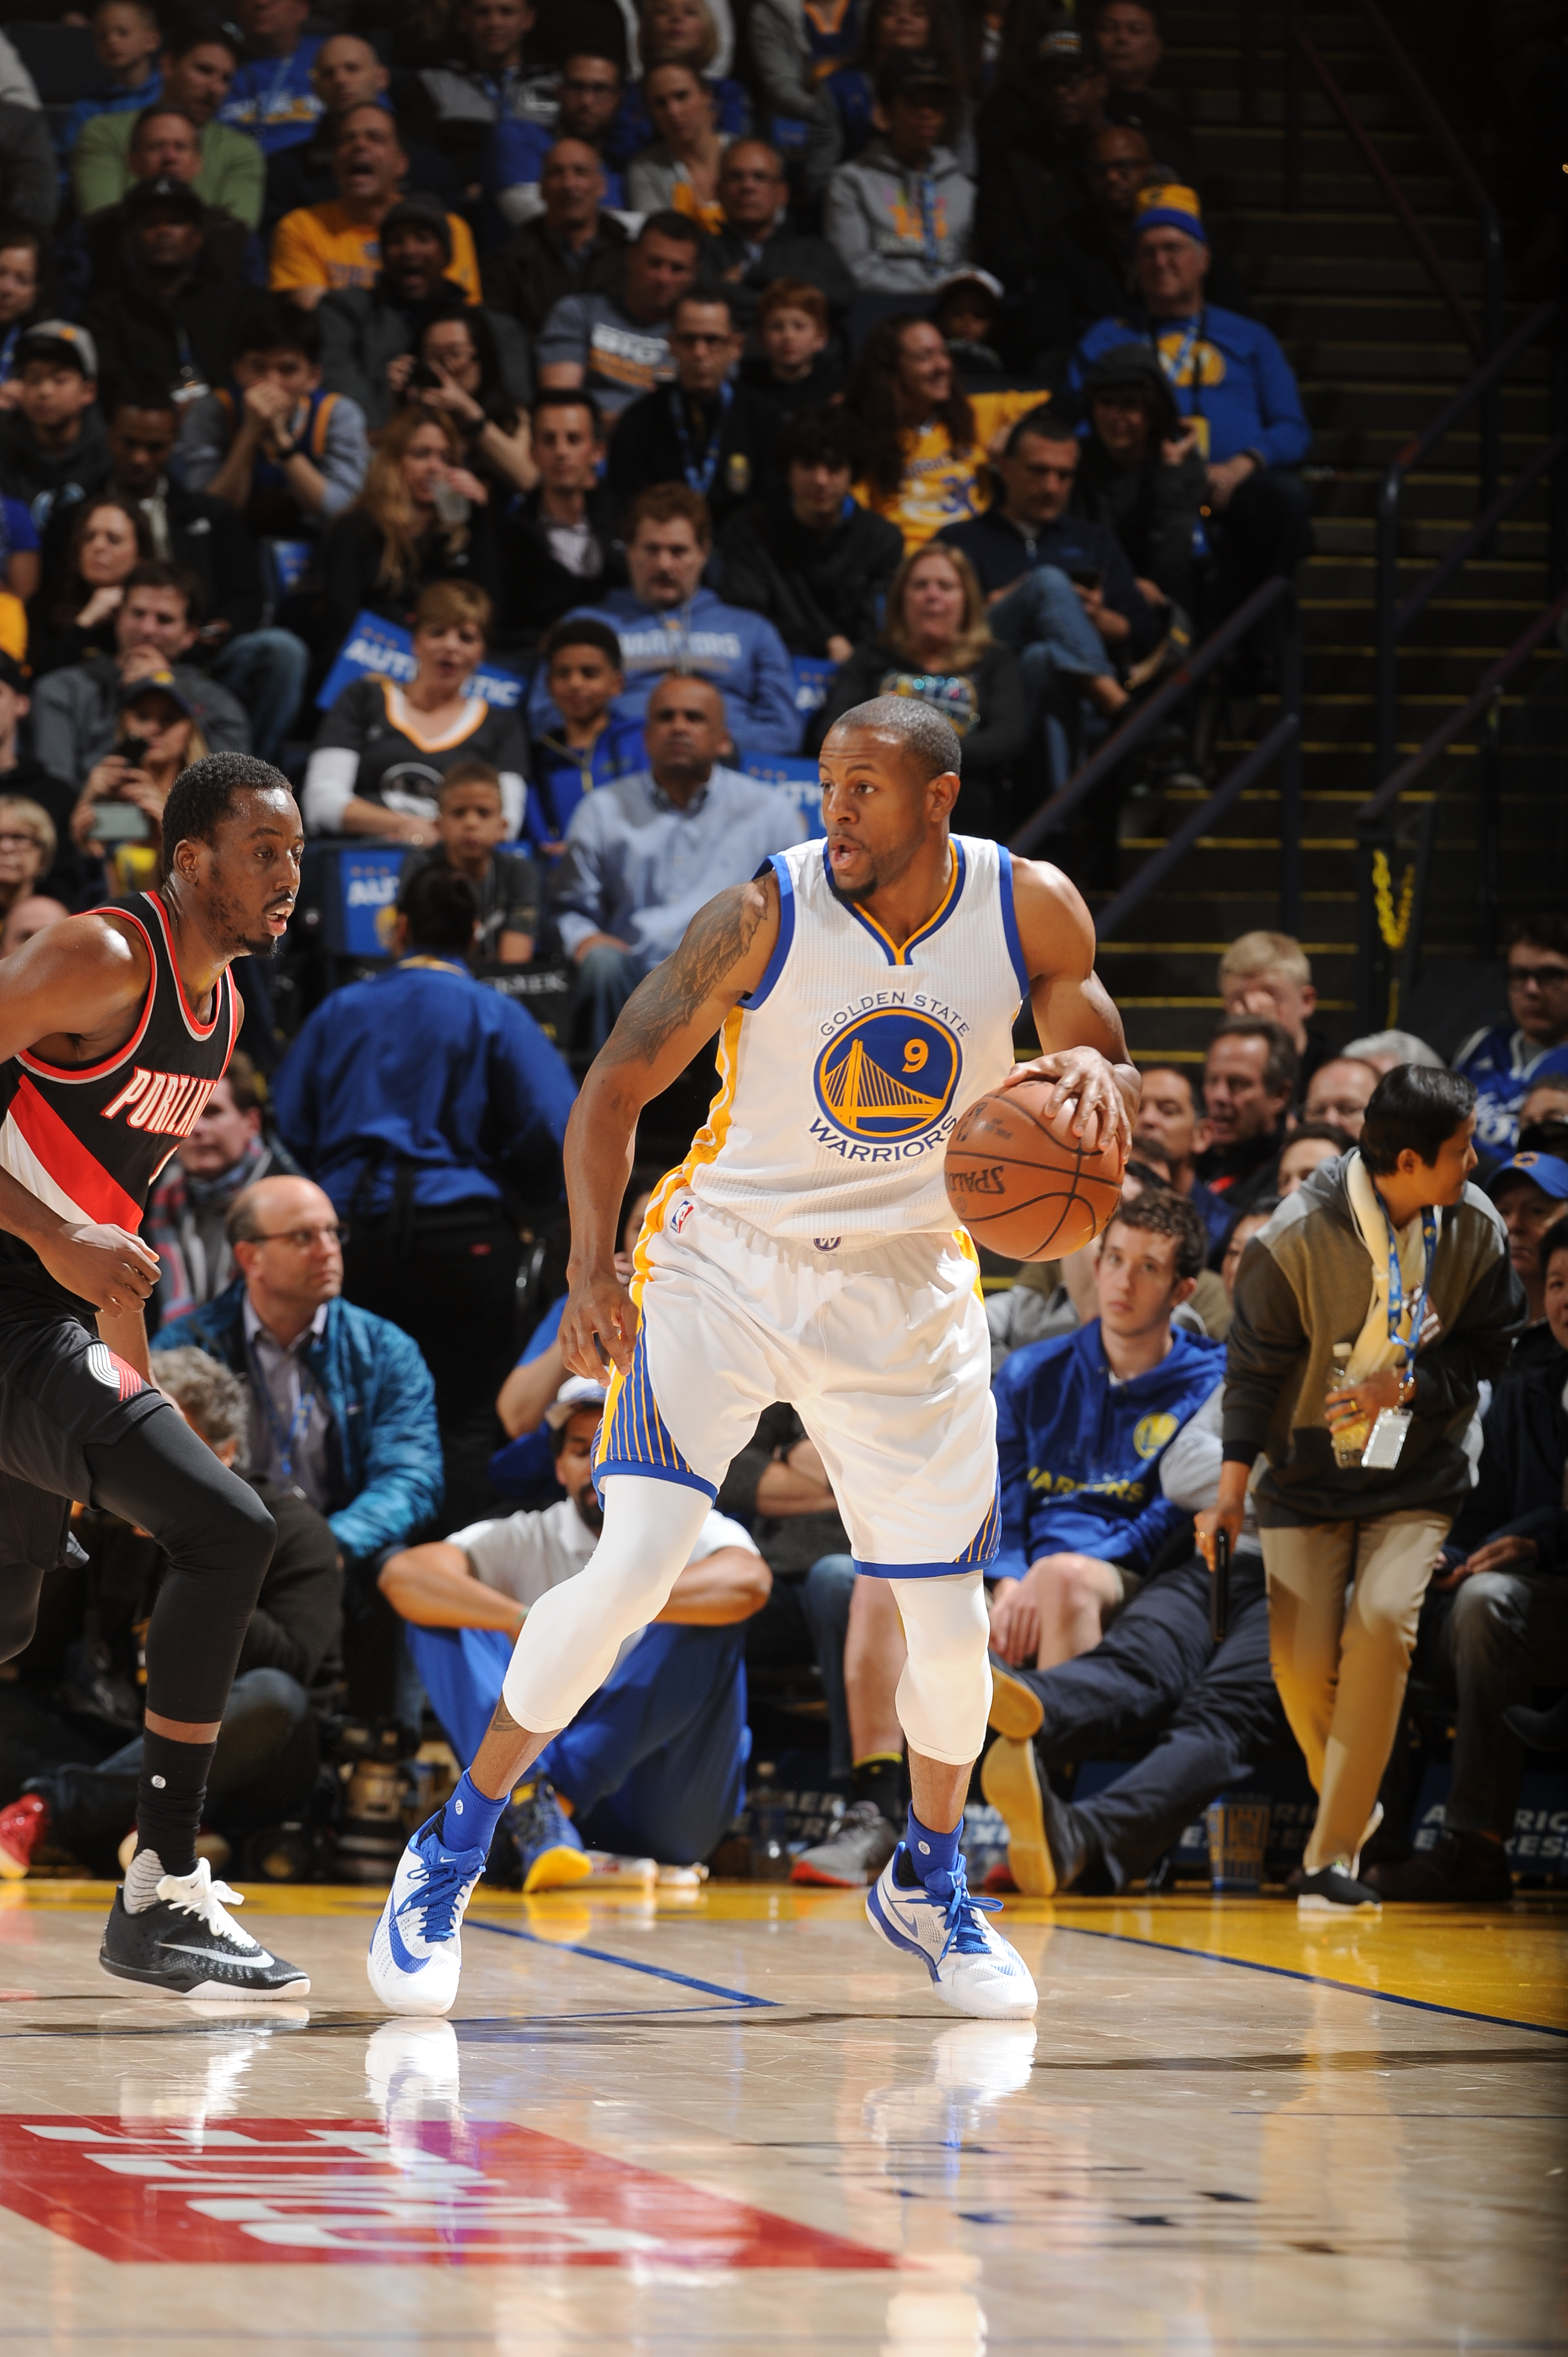 OAKLAND, CA - MARCH 11:  Andre Iguodala #9 of the Golden State Warriors handles the ball against the Portland Trail Blazers on March 11, 2016 at Oracle Arena in Oakland, California. (Photo by Noah Graham/NBAE via Getty Images)